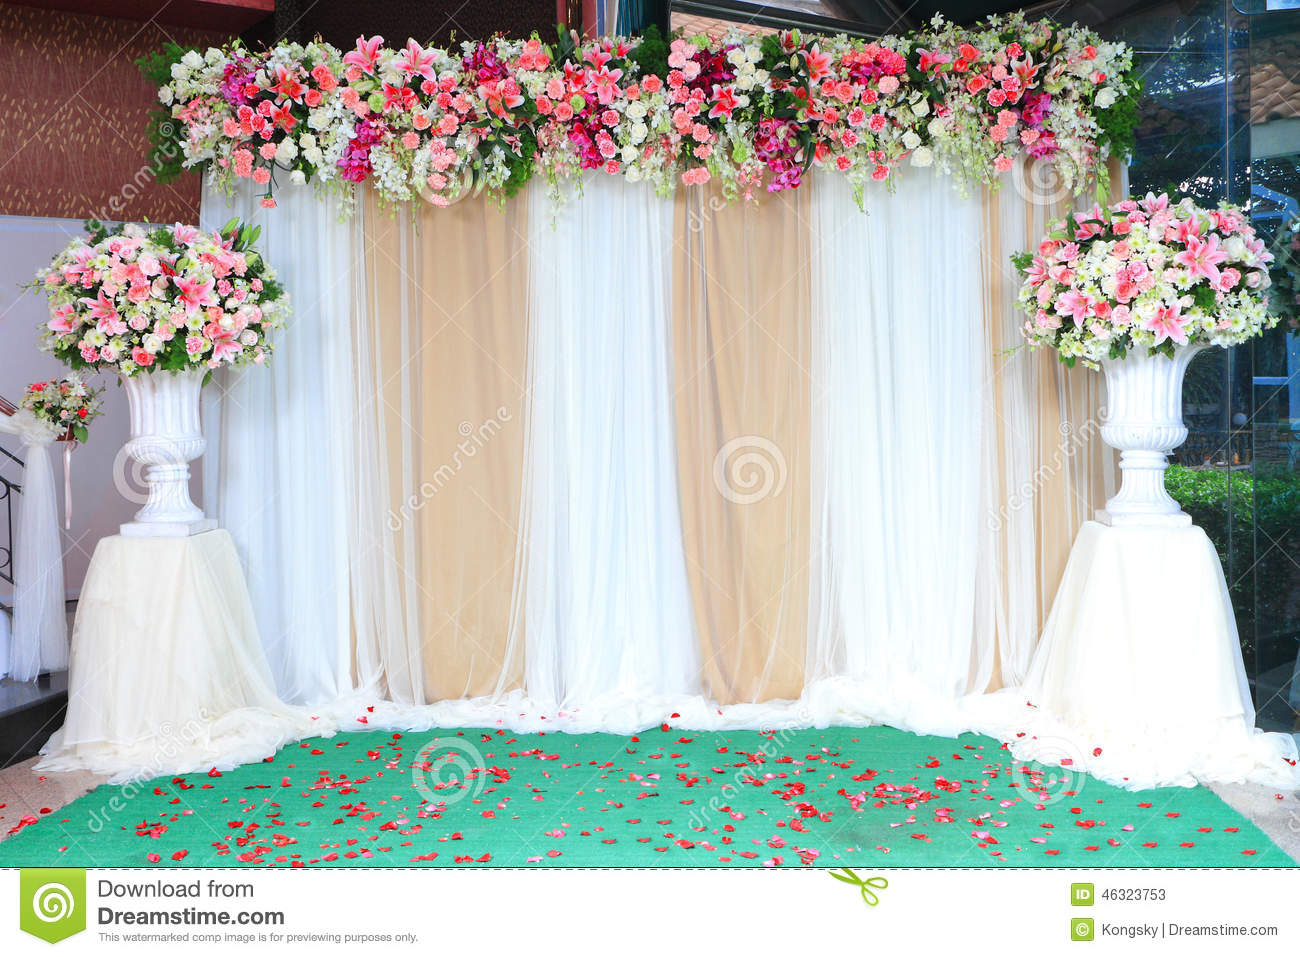 Colorful Backdrop Flowers With White And Gold Fabric Arrangement